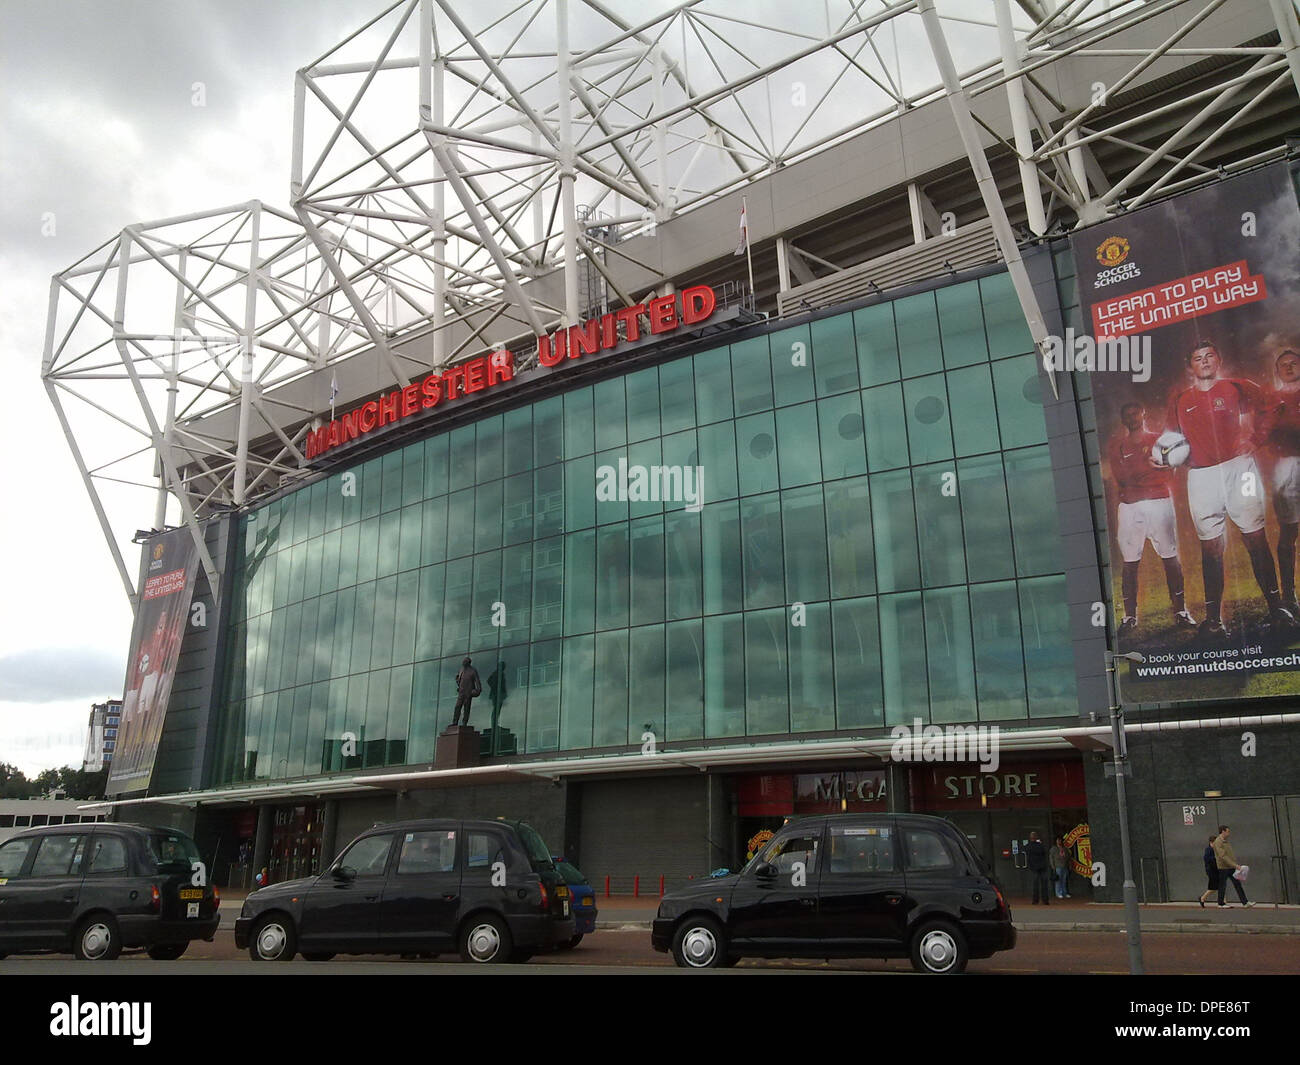 Old Trafford manchester united football club with taxi's waiting outside - Stock Image